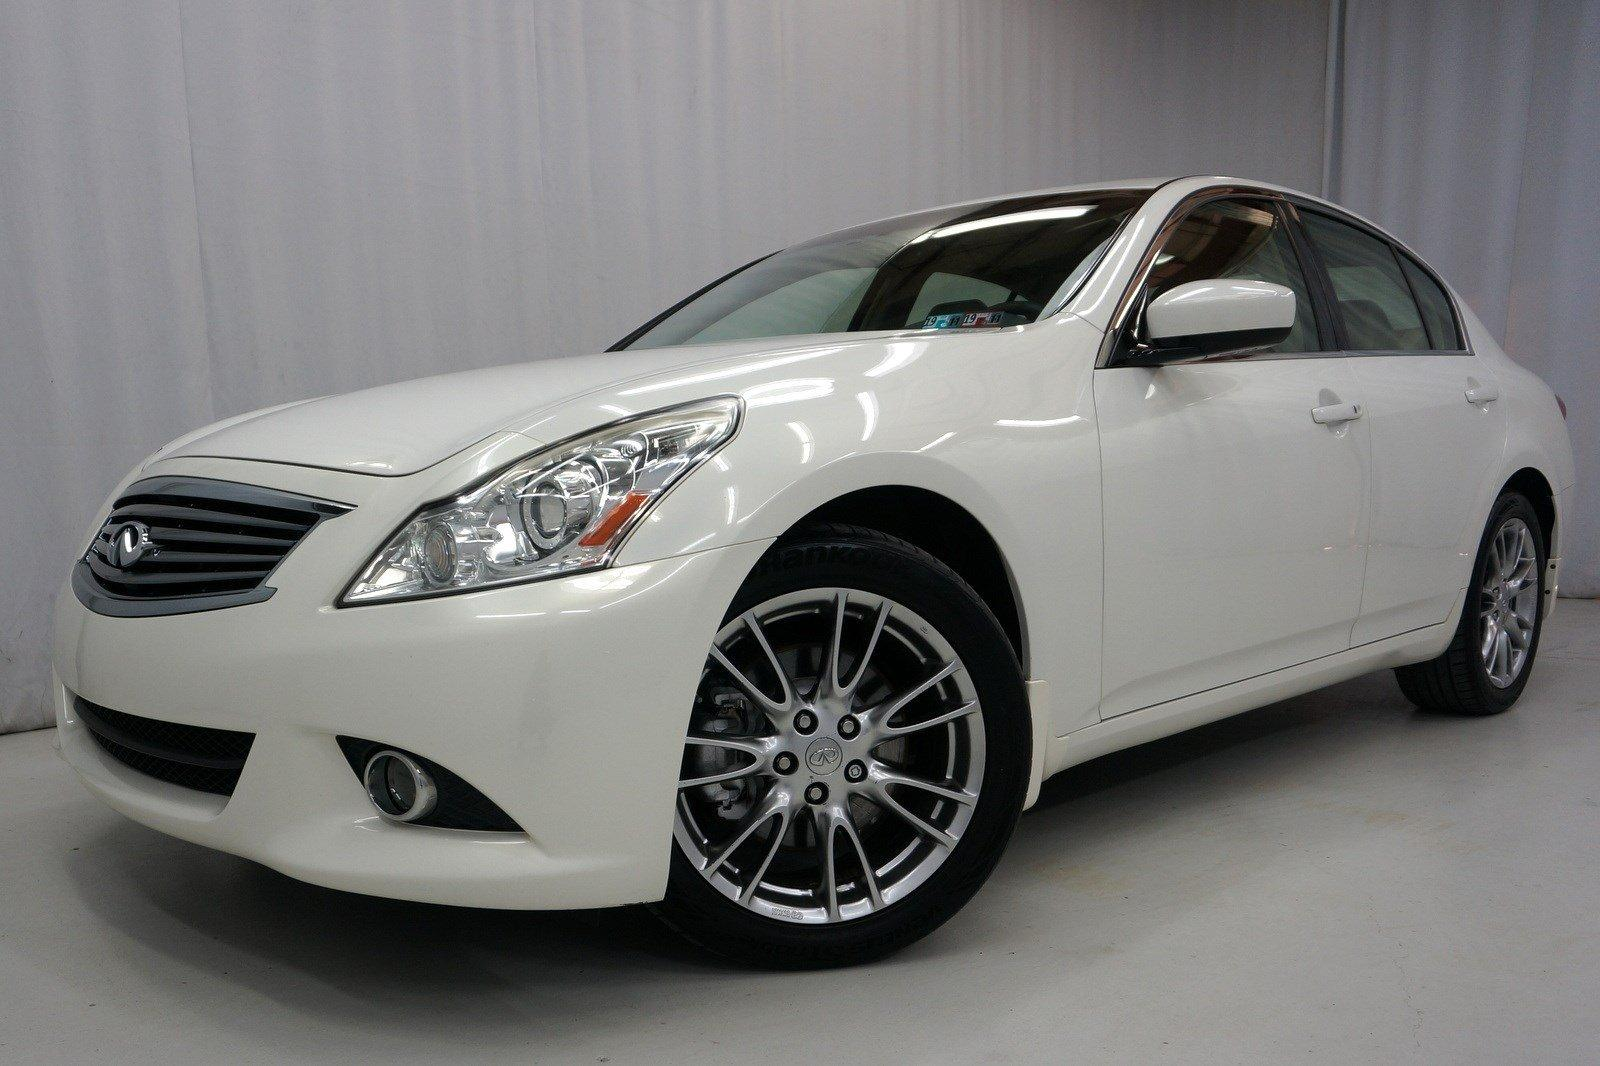 2012 Infiniti G37 Sedan X Sport Appearance Edition Stock M973762 For Sale Near King Of Prussia Pa Pa Infiniti Dealer